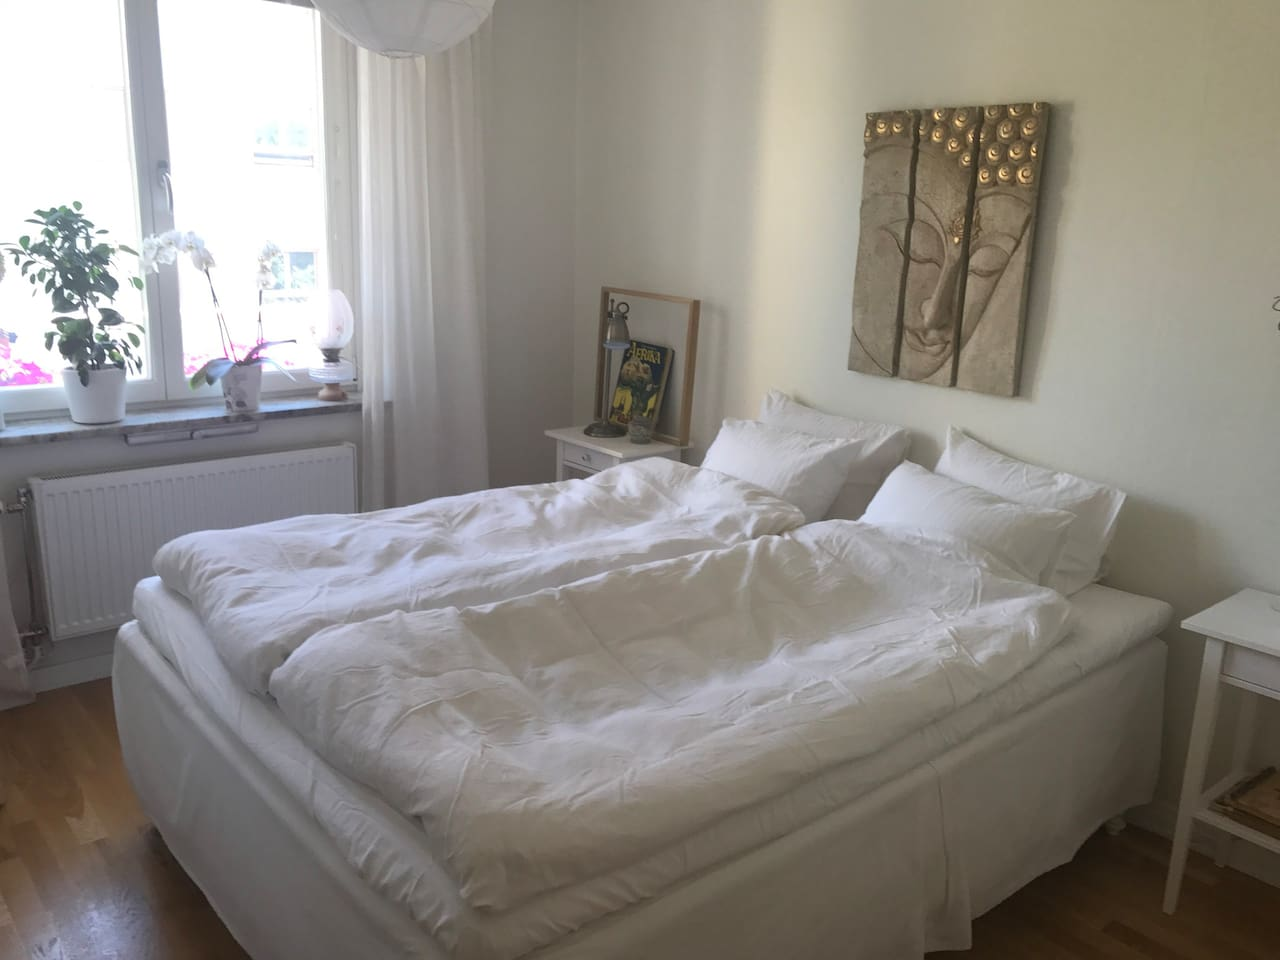 Your room during your stay:o) Bed for 2 people - 160x200 cm You will find shampoo, conditioner, body wash/soap, hairdryer and flattener. Hangers to hang clothes on Bed linen and towels Iron & ironboard  Free wifi/internet